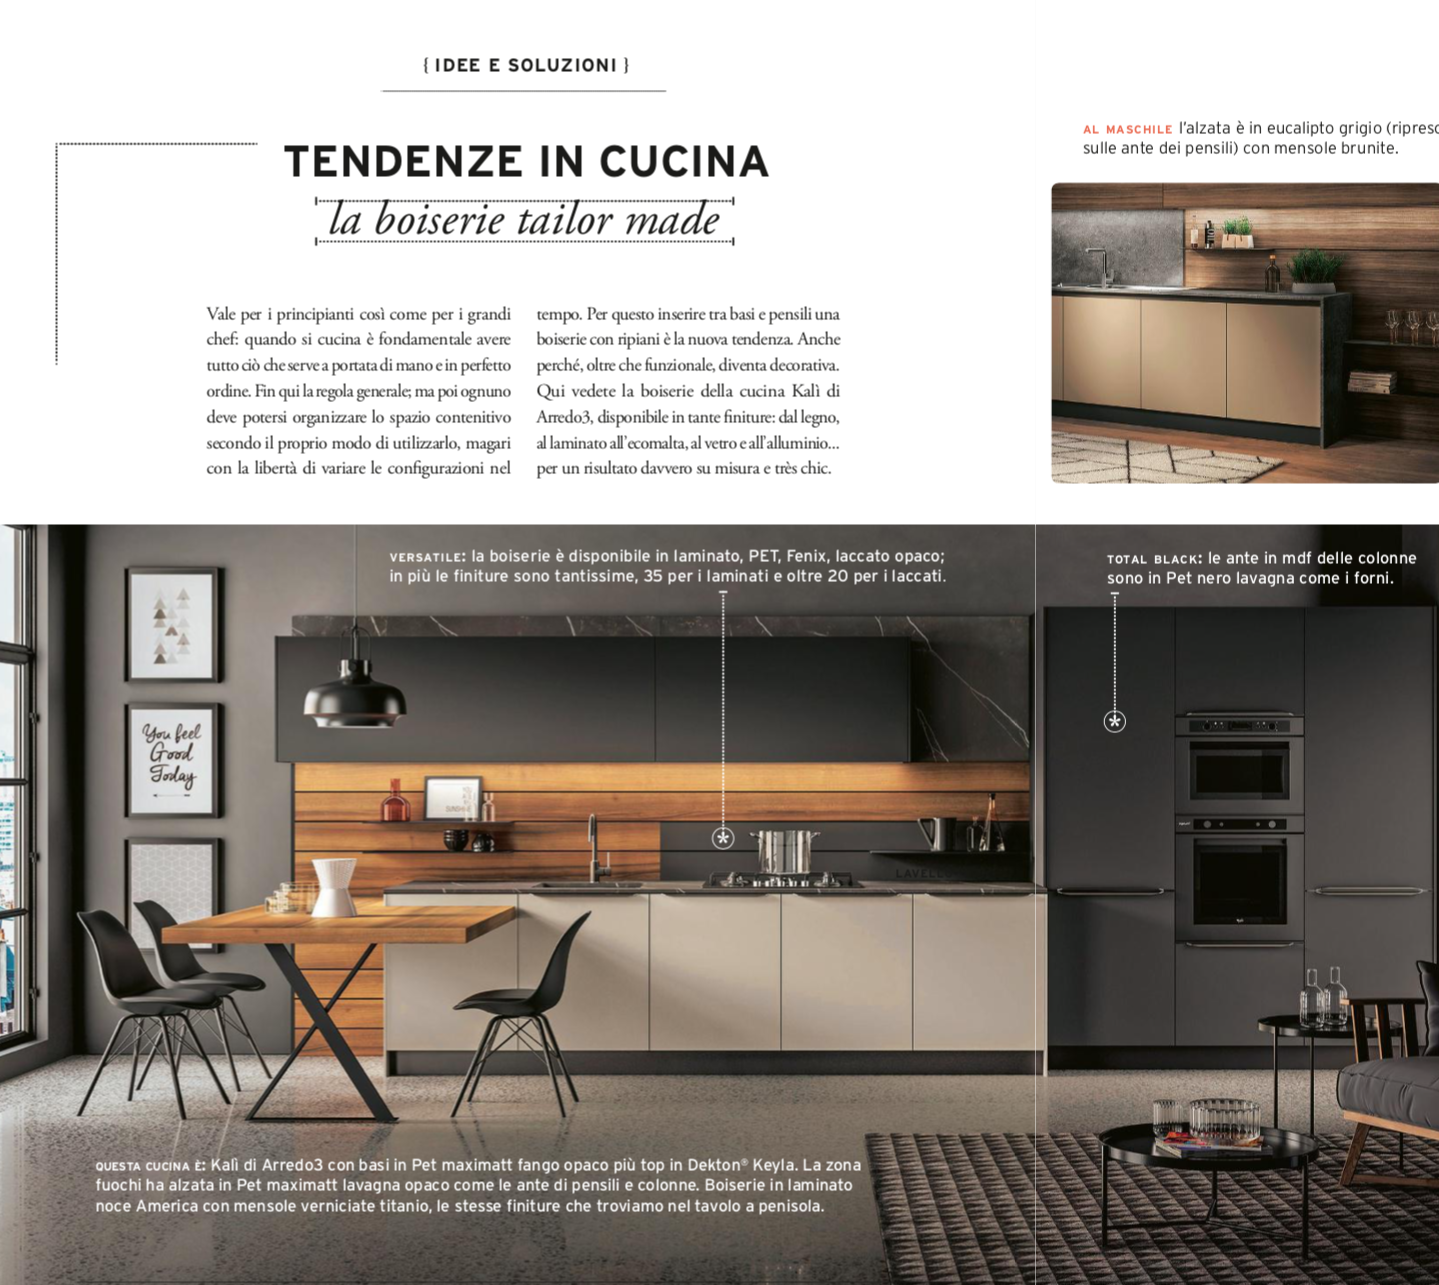 Mensole Ikea Cucina Prezzi boiserie - cucina - mensole (with images) | home projects